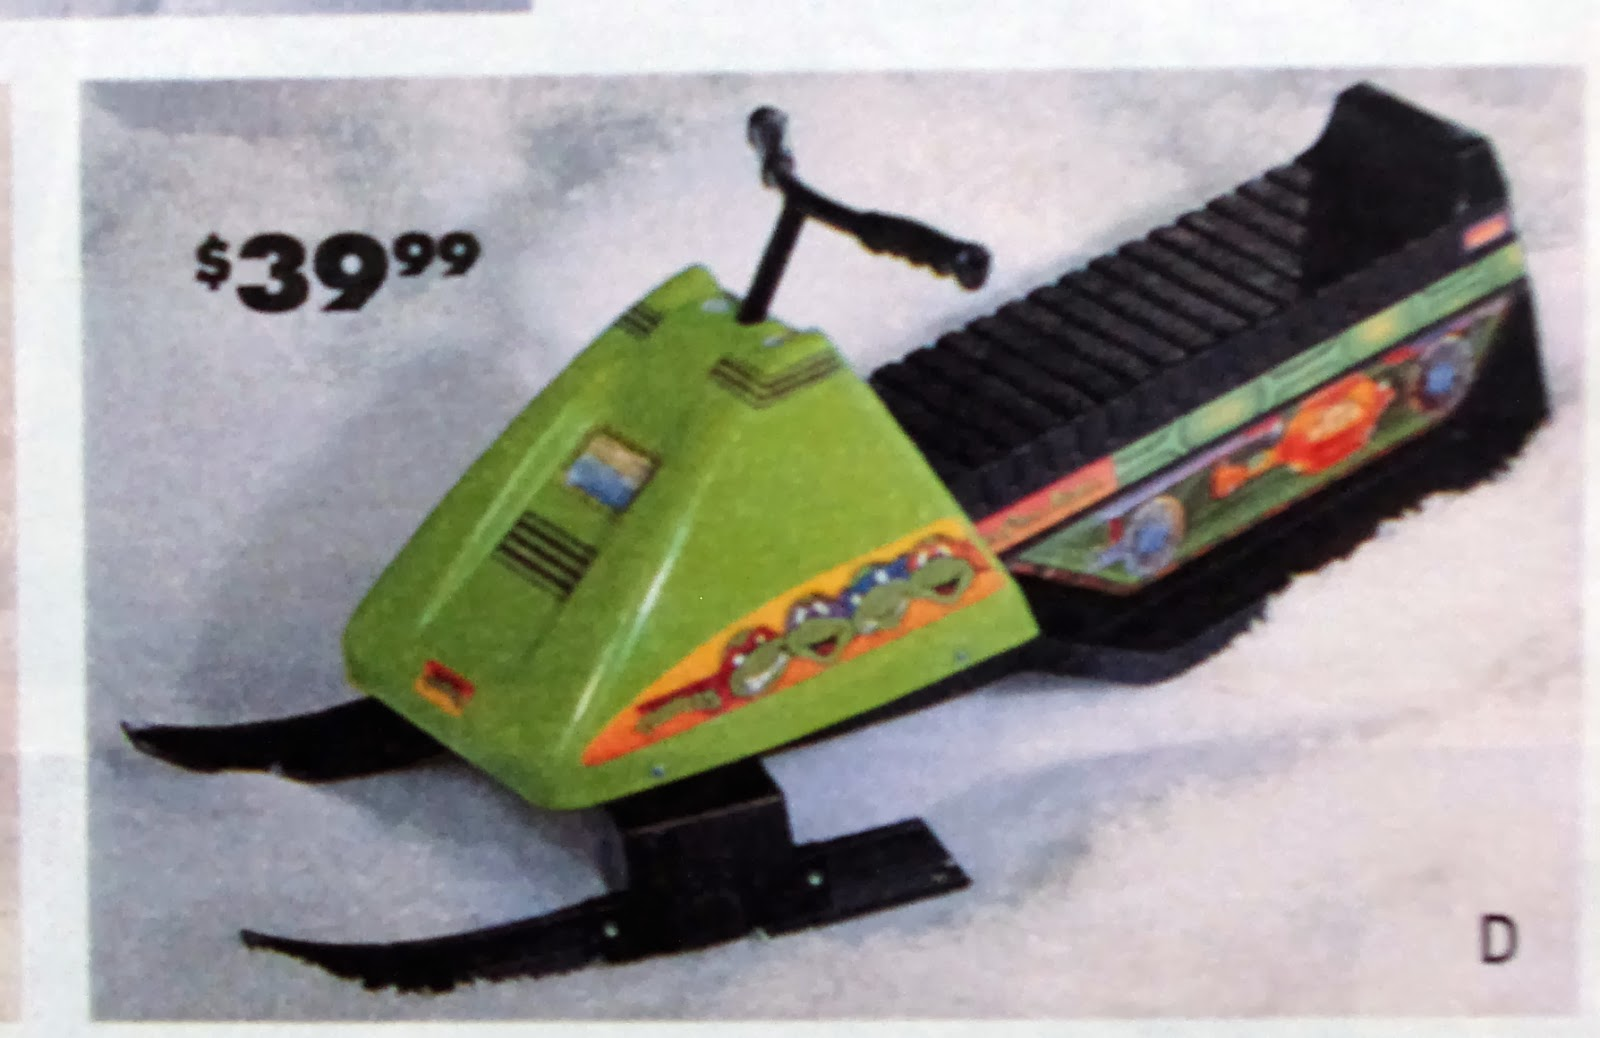 Sears Wishbook 1992: Turtle Power Edition - Crooked Ninja